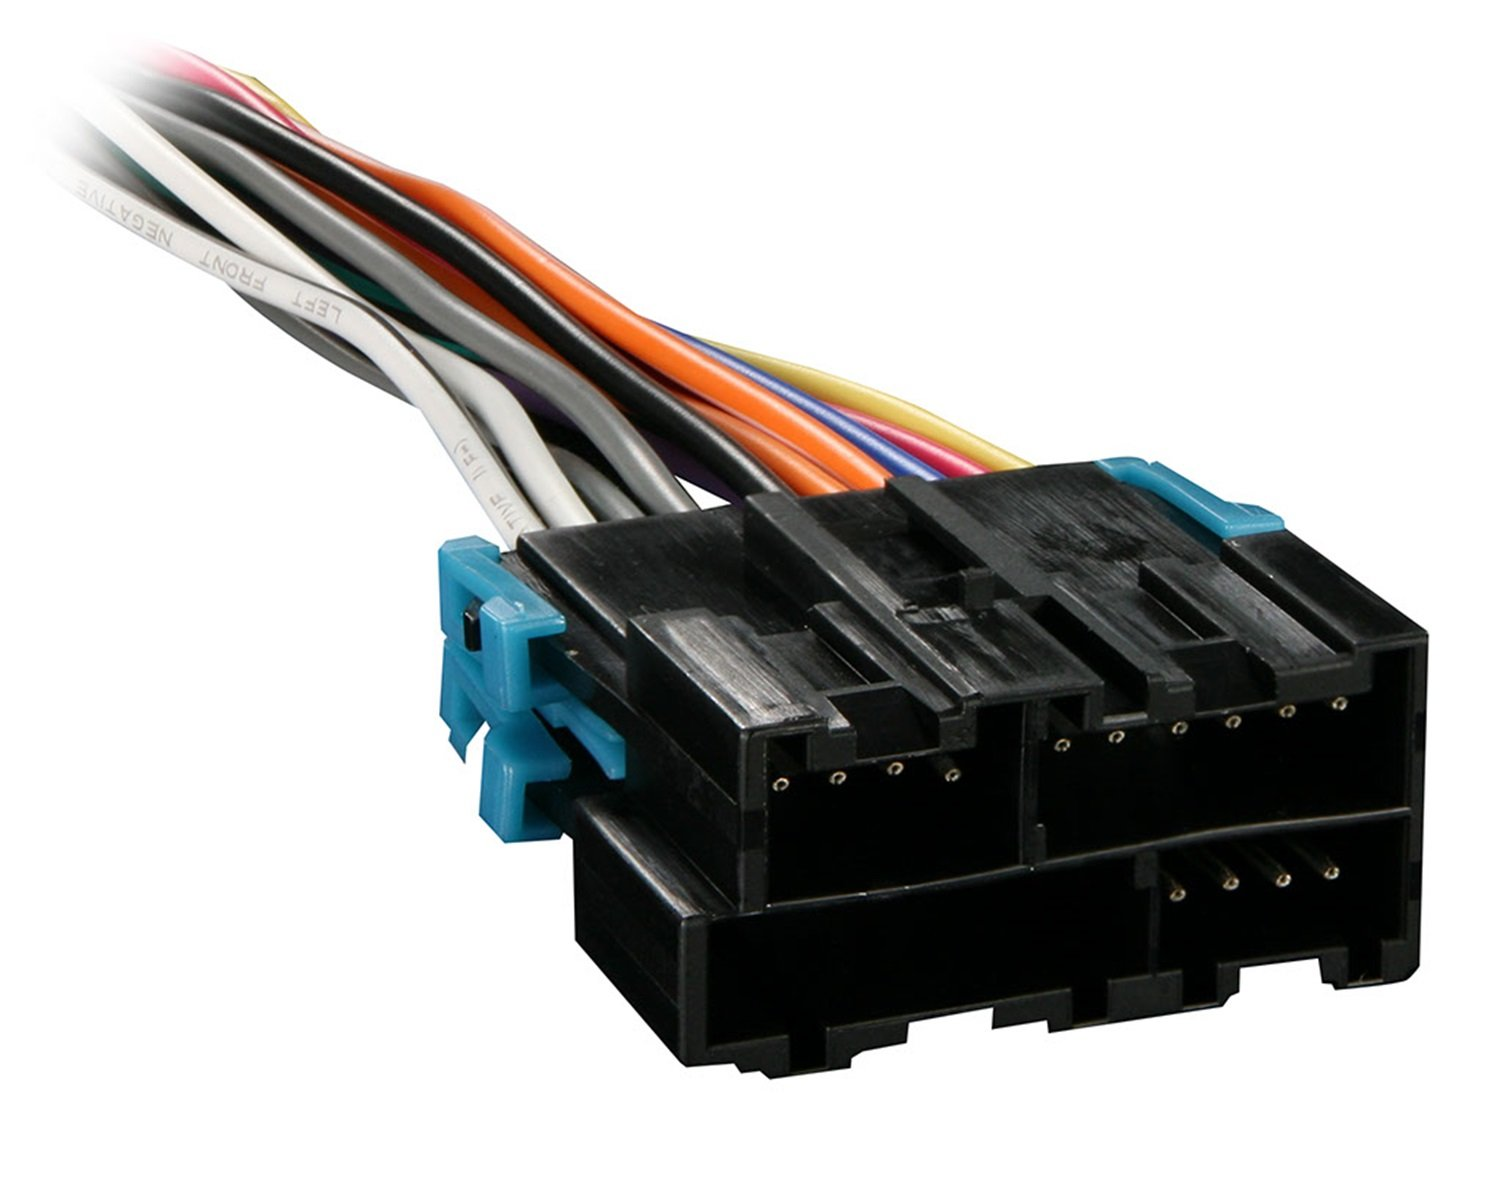 61 CwjZt1hL._SL1500_ radio wiring harnesses amazon com aiwa car stereo wiring harness at gsmx.co